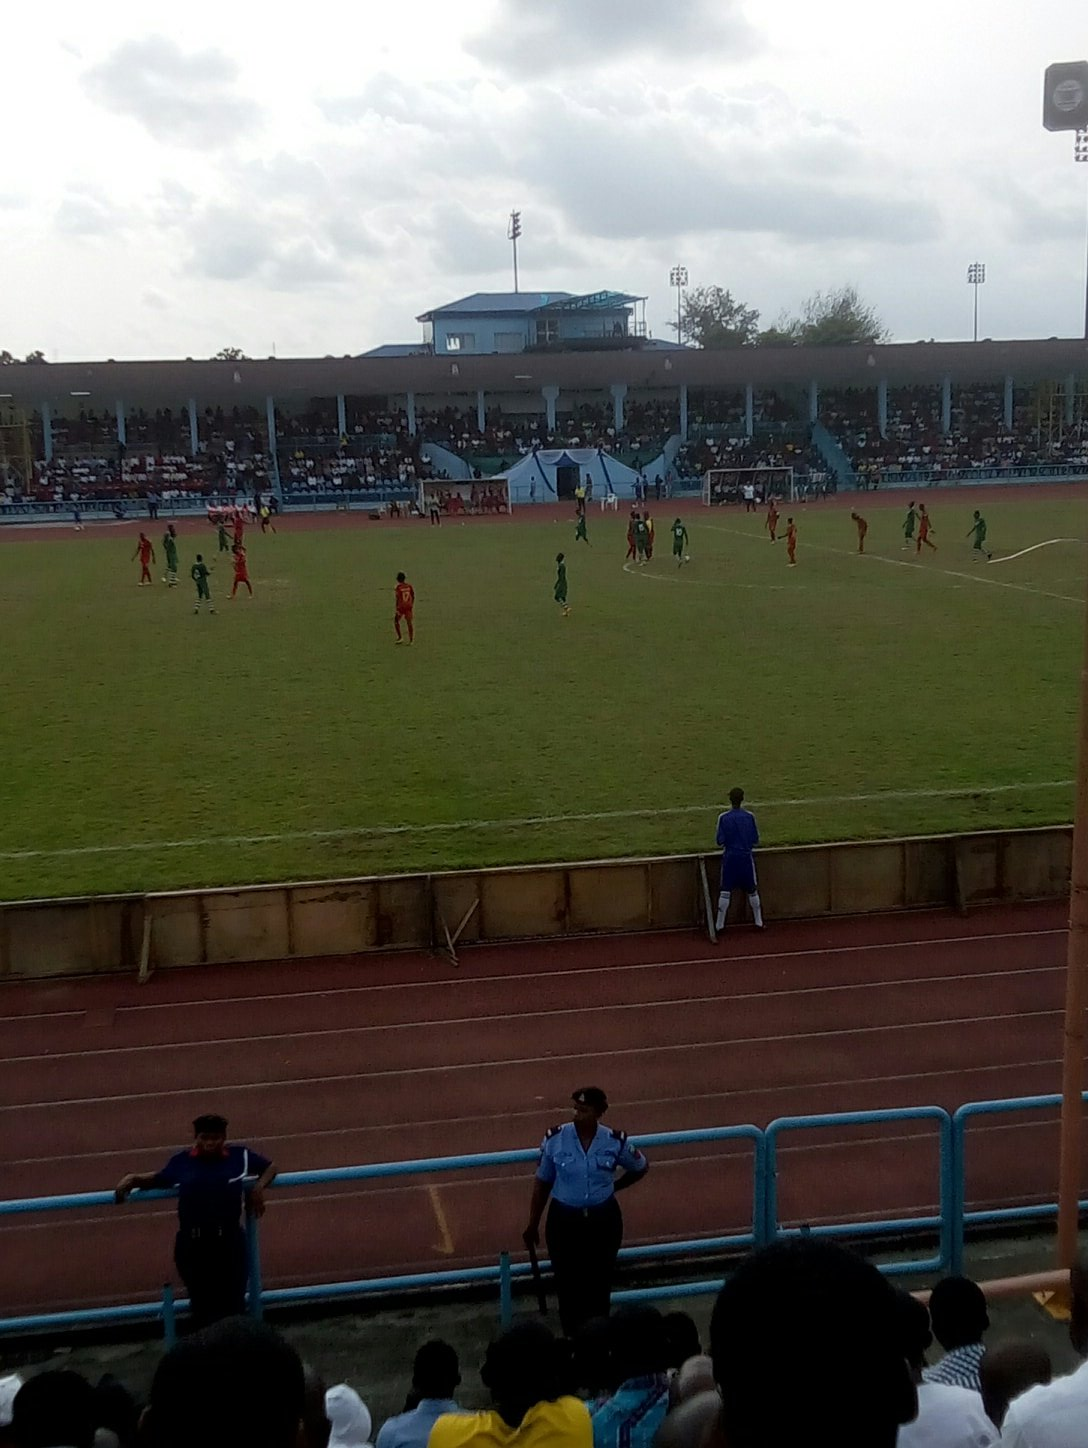 Watching #Nigeria Vs #Guinea Bissau live in the U J Esuene Stadium, Calabar... #NigeriaVsGuineaBissau.... https://t.co/eQnL2ipcmn